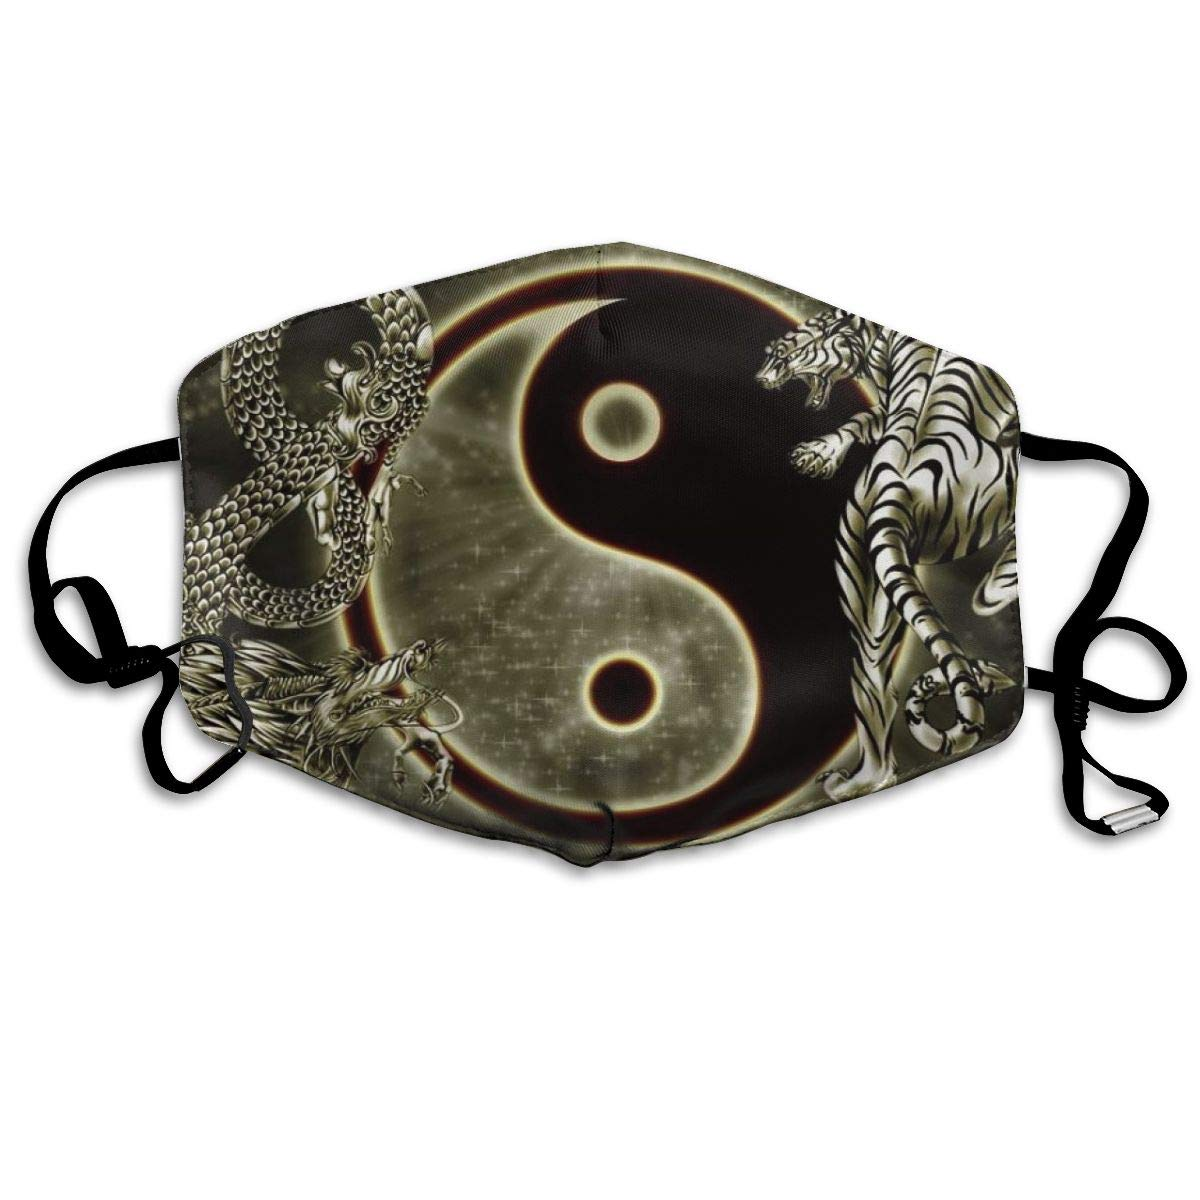 Women Men Breathable Anti-Dust Face Mouth Cover Mask Respirator, Protection Anti Pollution Warm Windproof Mask, Yin Yang Dragon